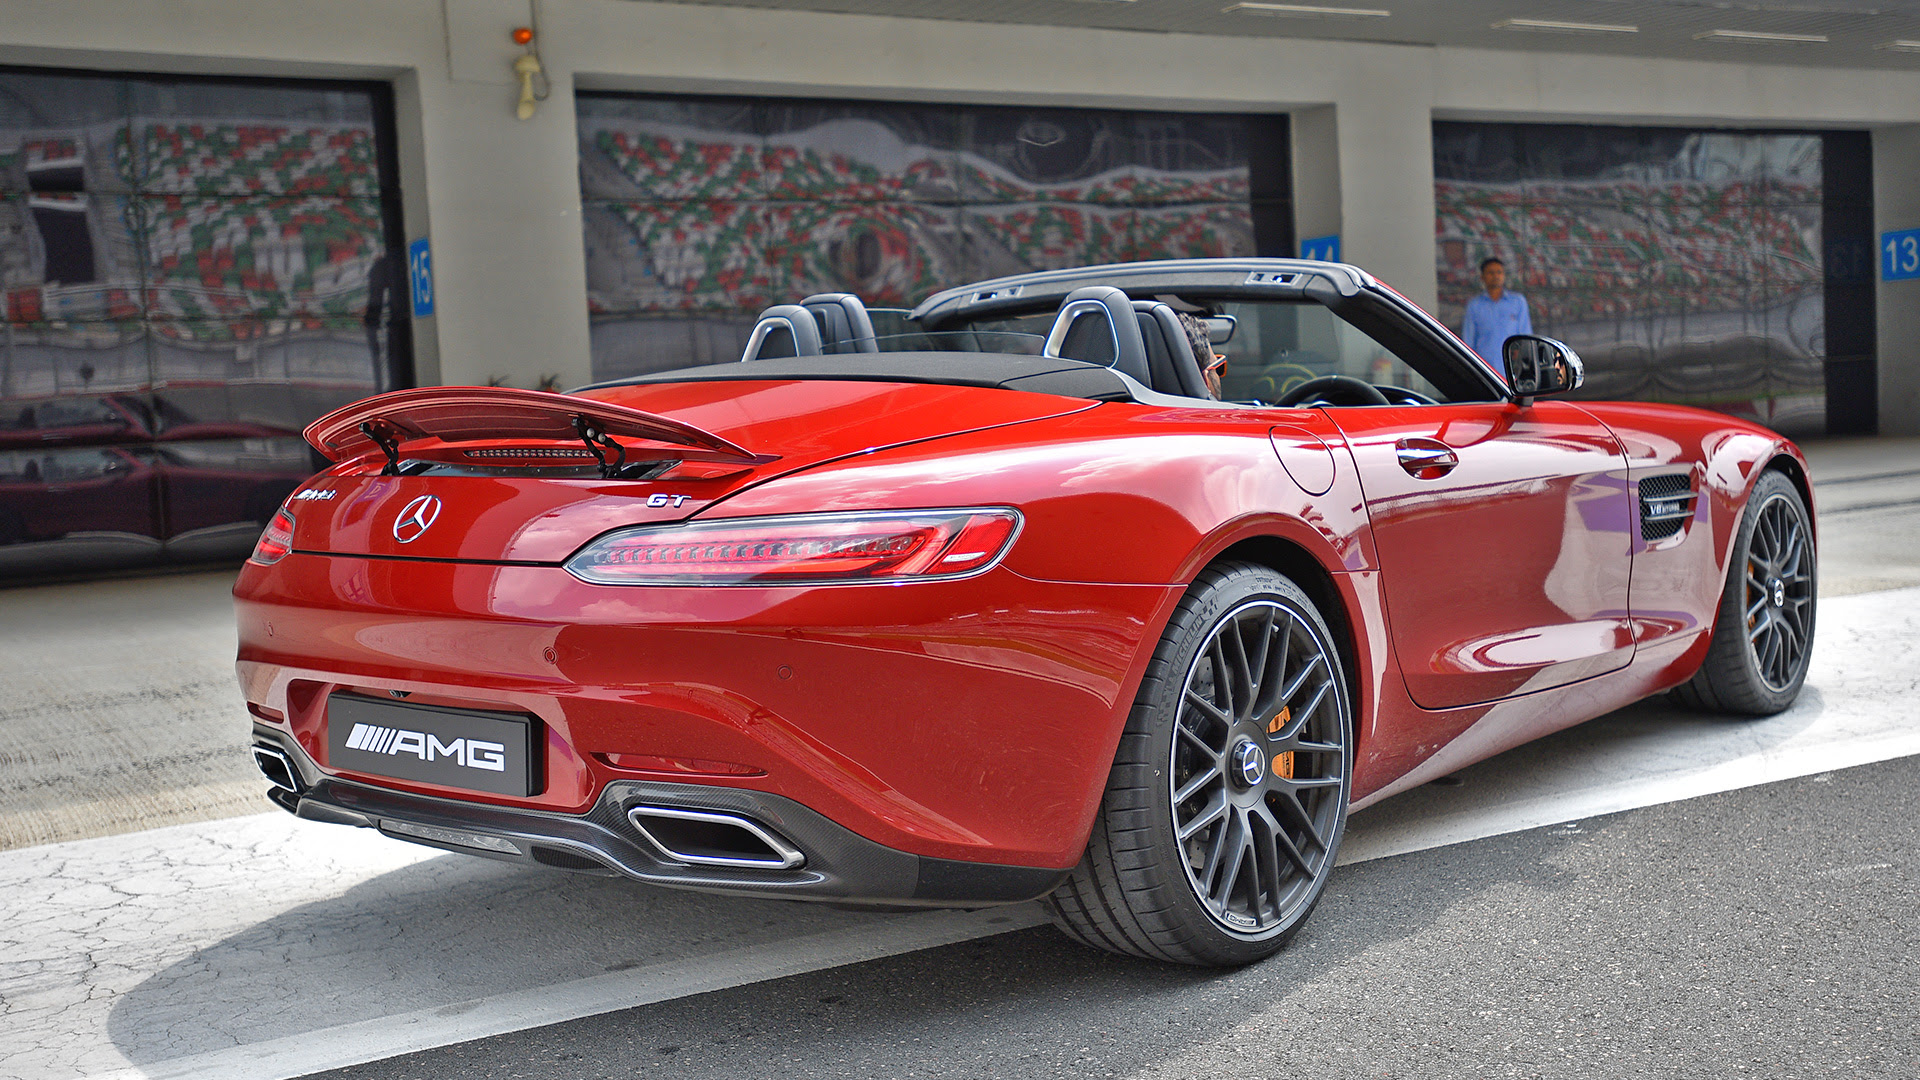 Mercedes-Benz AMG GT 2017 - Price, Mileage, Reviews ...